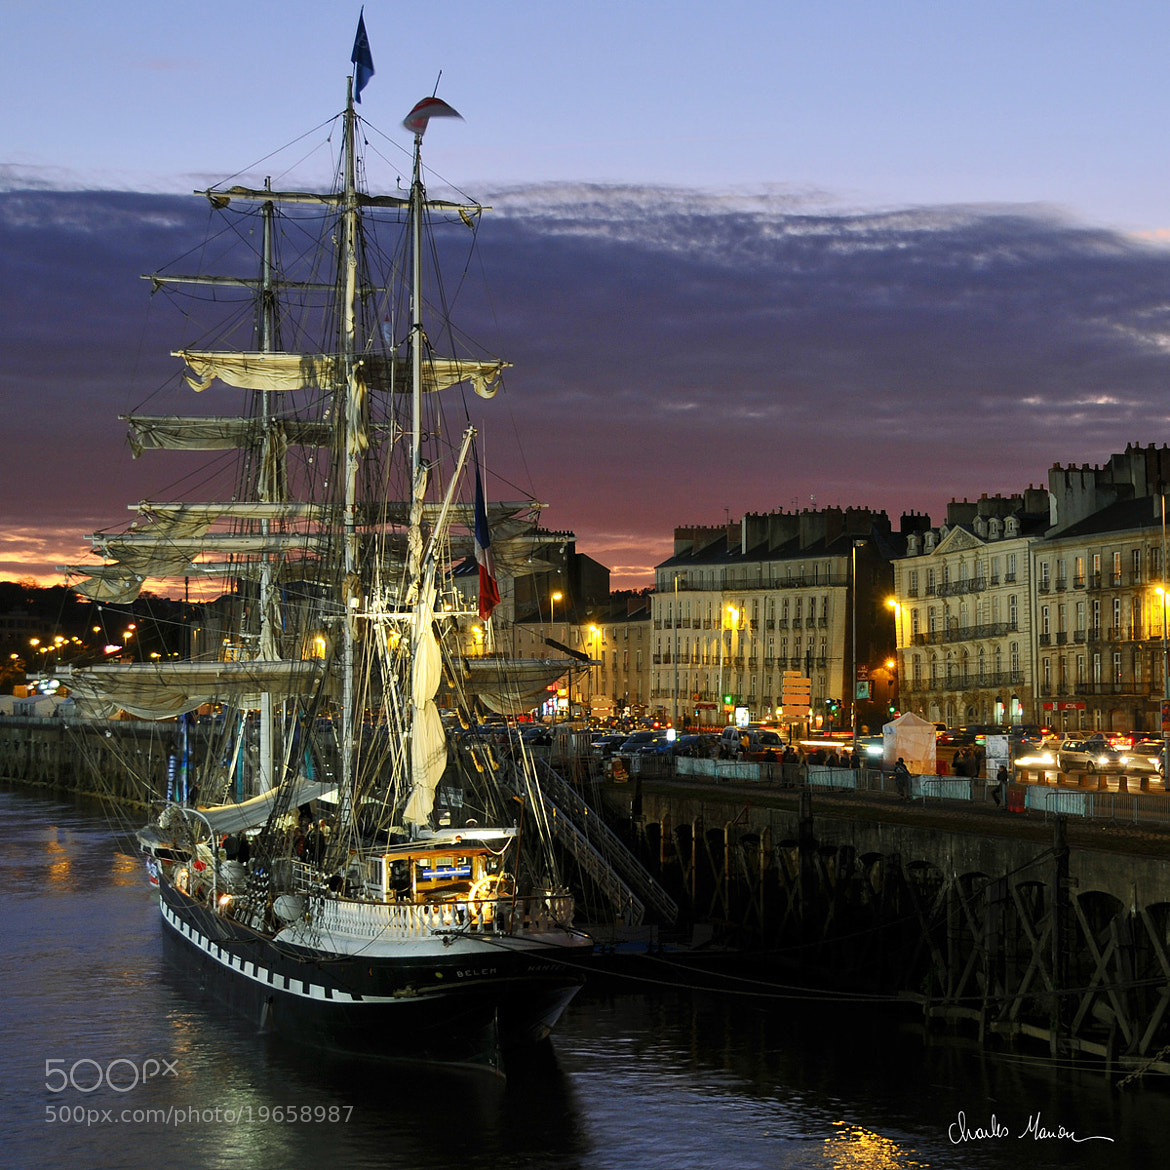 Photograph The Belem in Nantes by Charles Marion on 500px